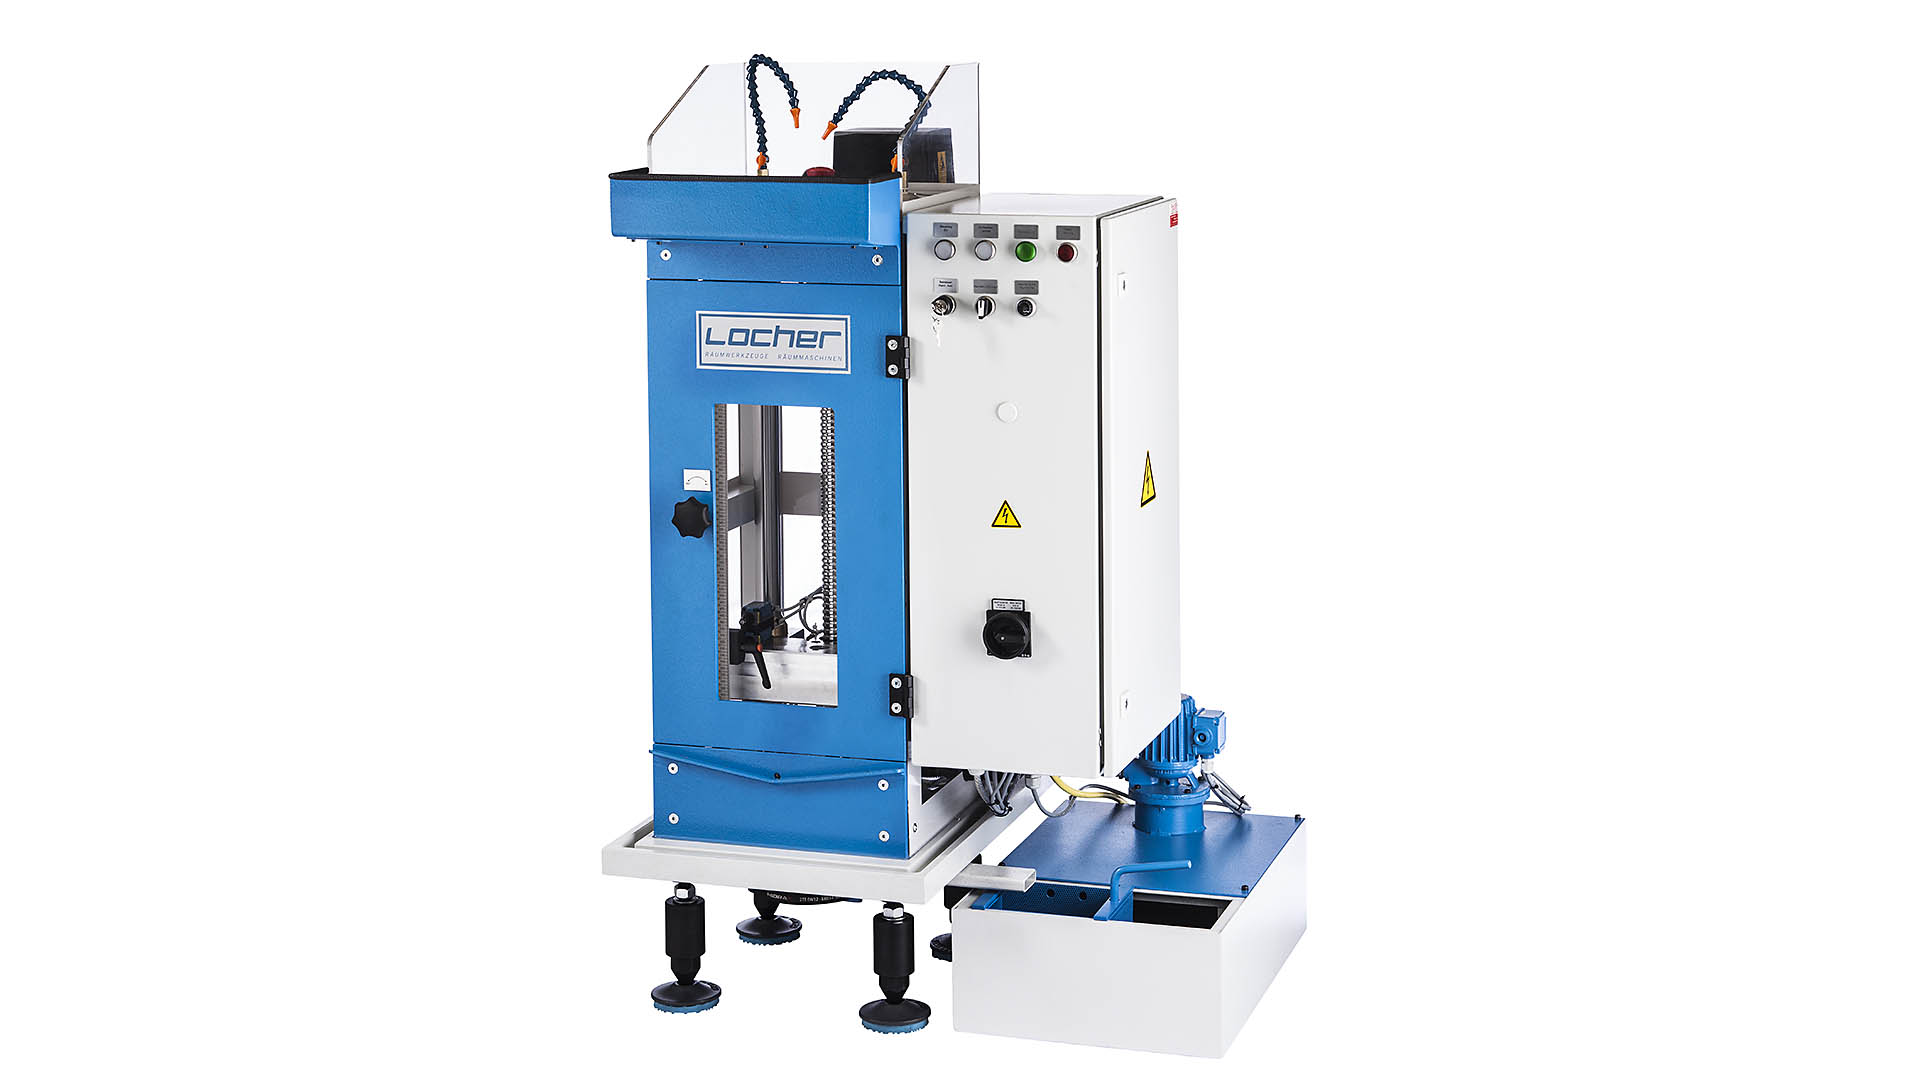 productshot of a small broaching machine. Industrialphoto done by a industrial photographer